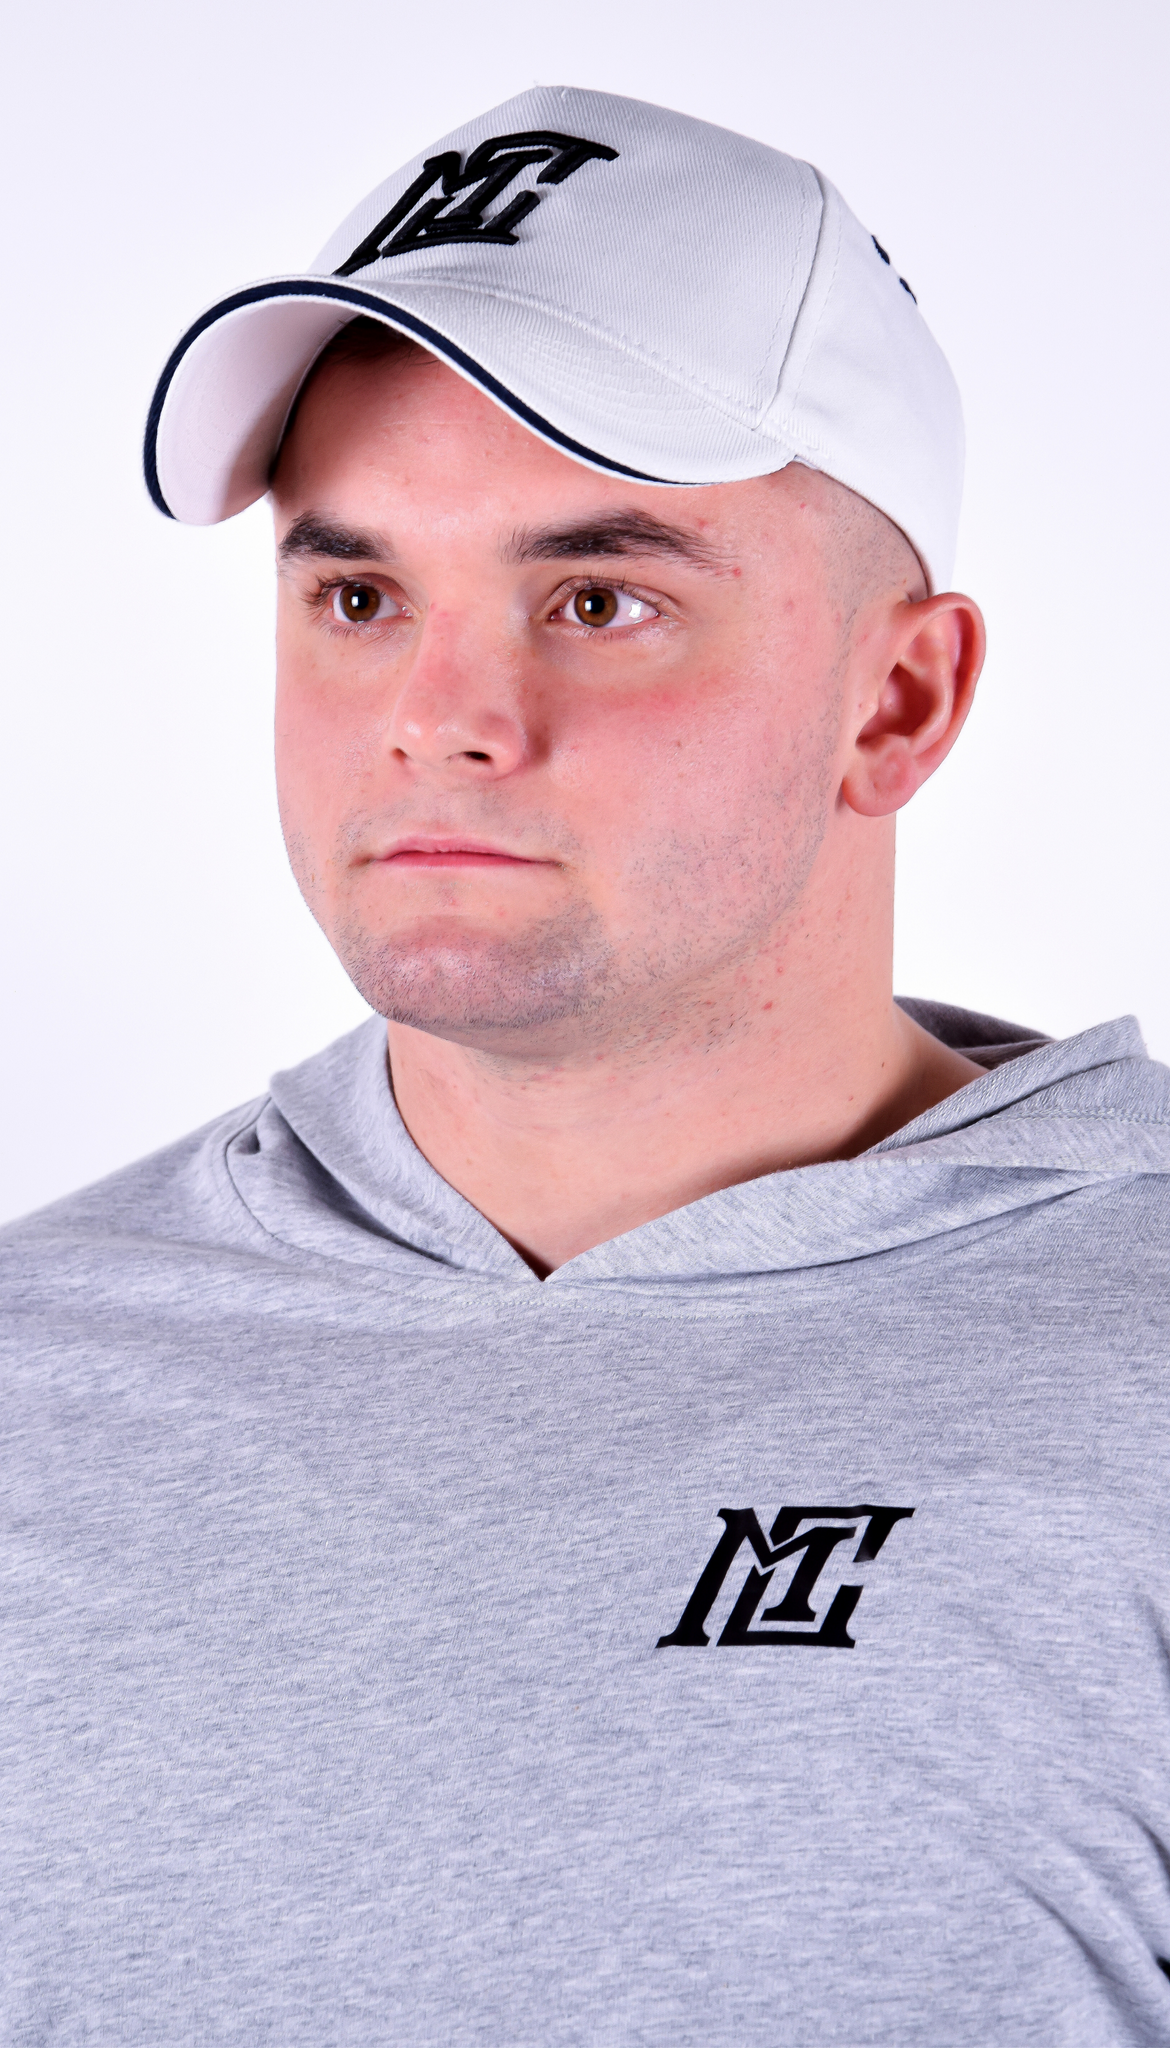 Mens - White Motivational Clothing Cap - Motivational Clothing Ltd